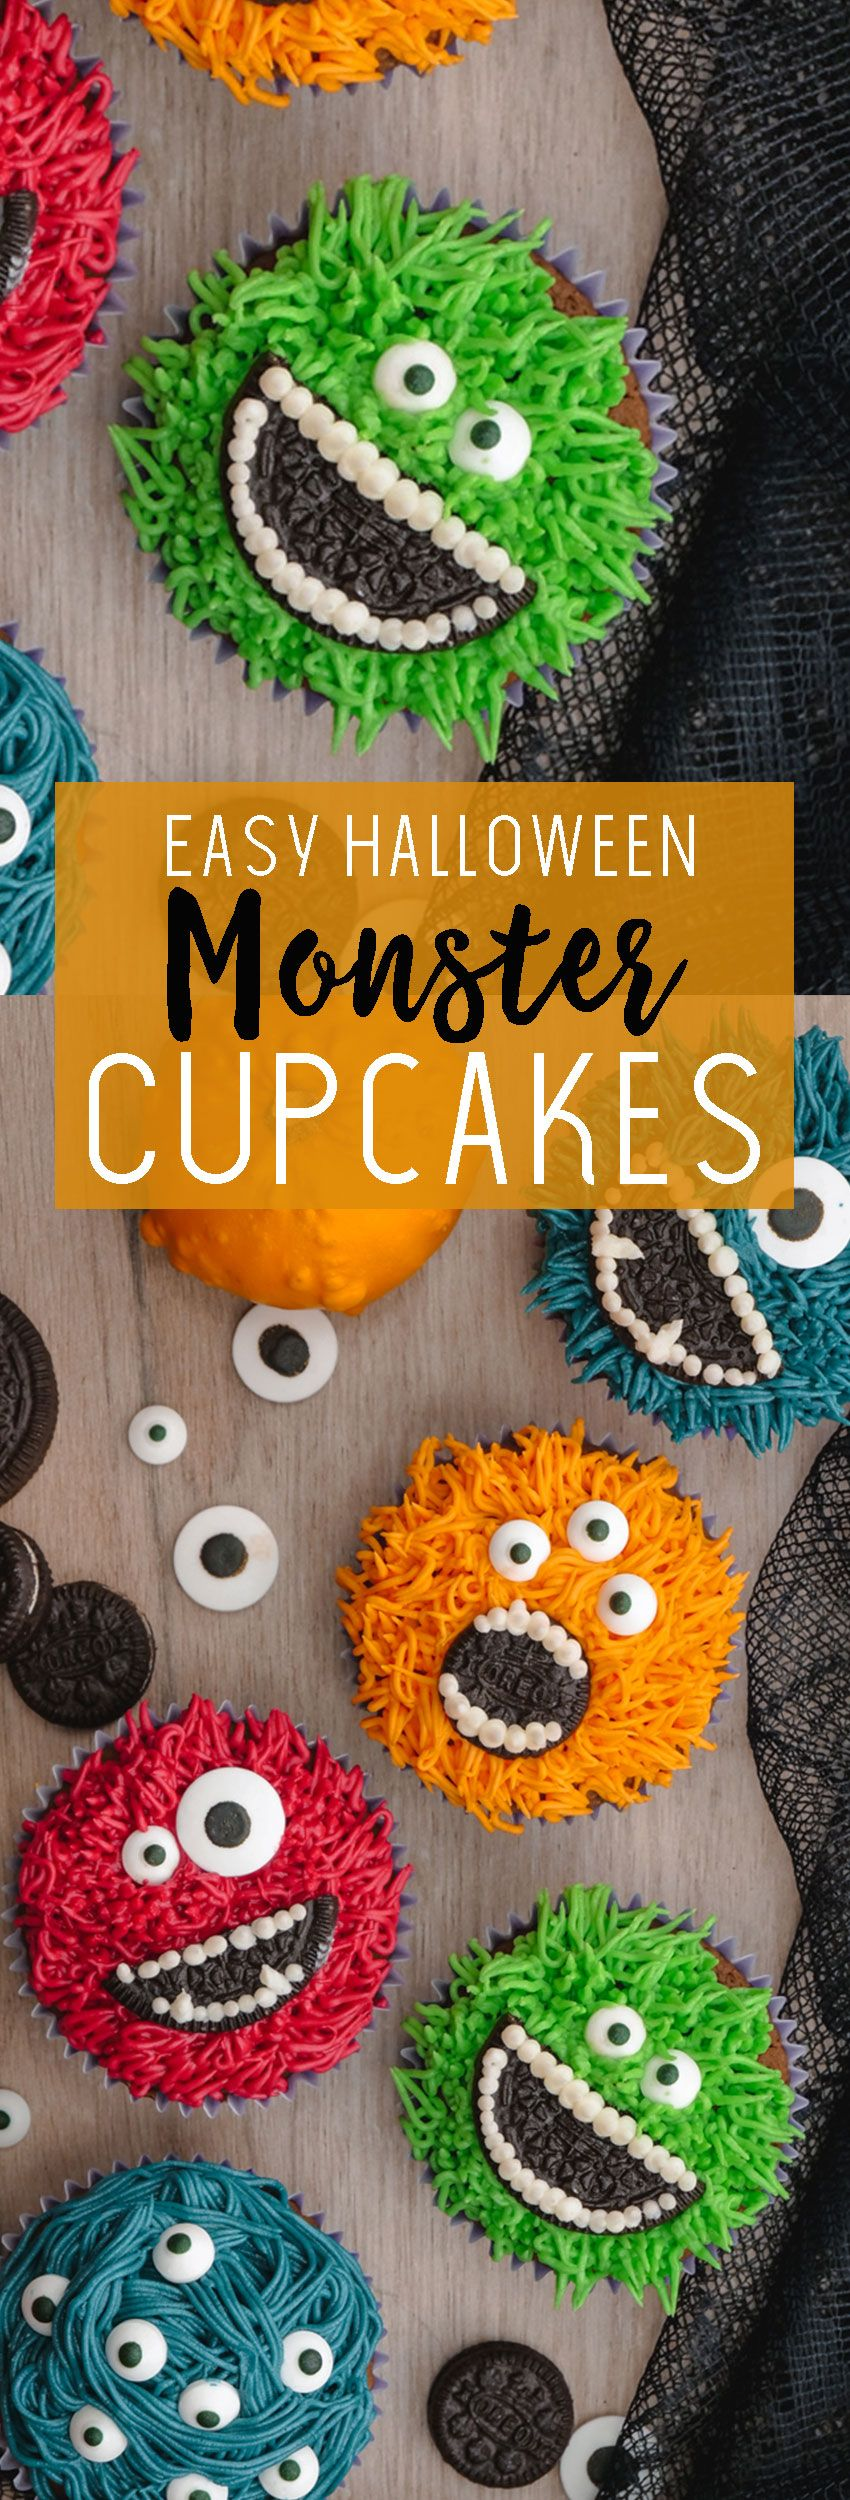 Halloween Cupcakes: Monster Cupcakes - Easy Peasy Meals